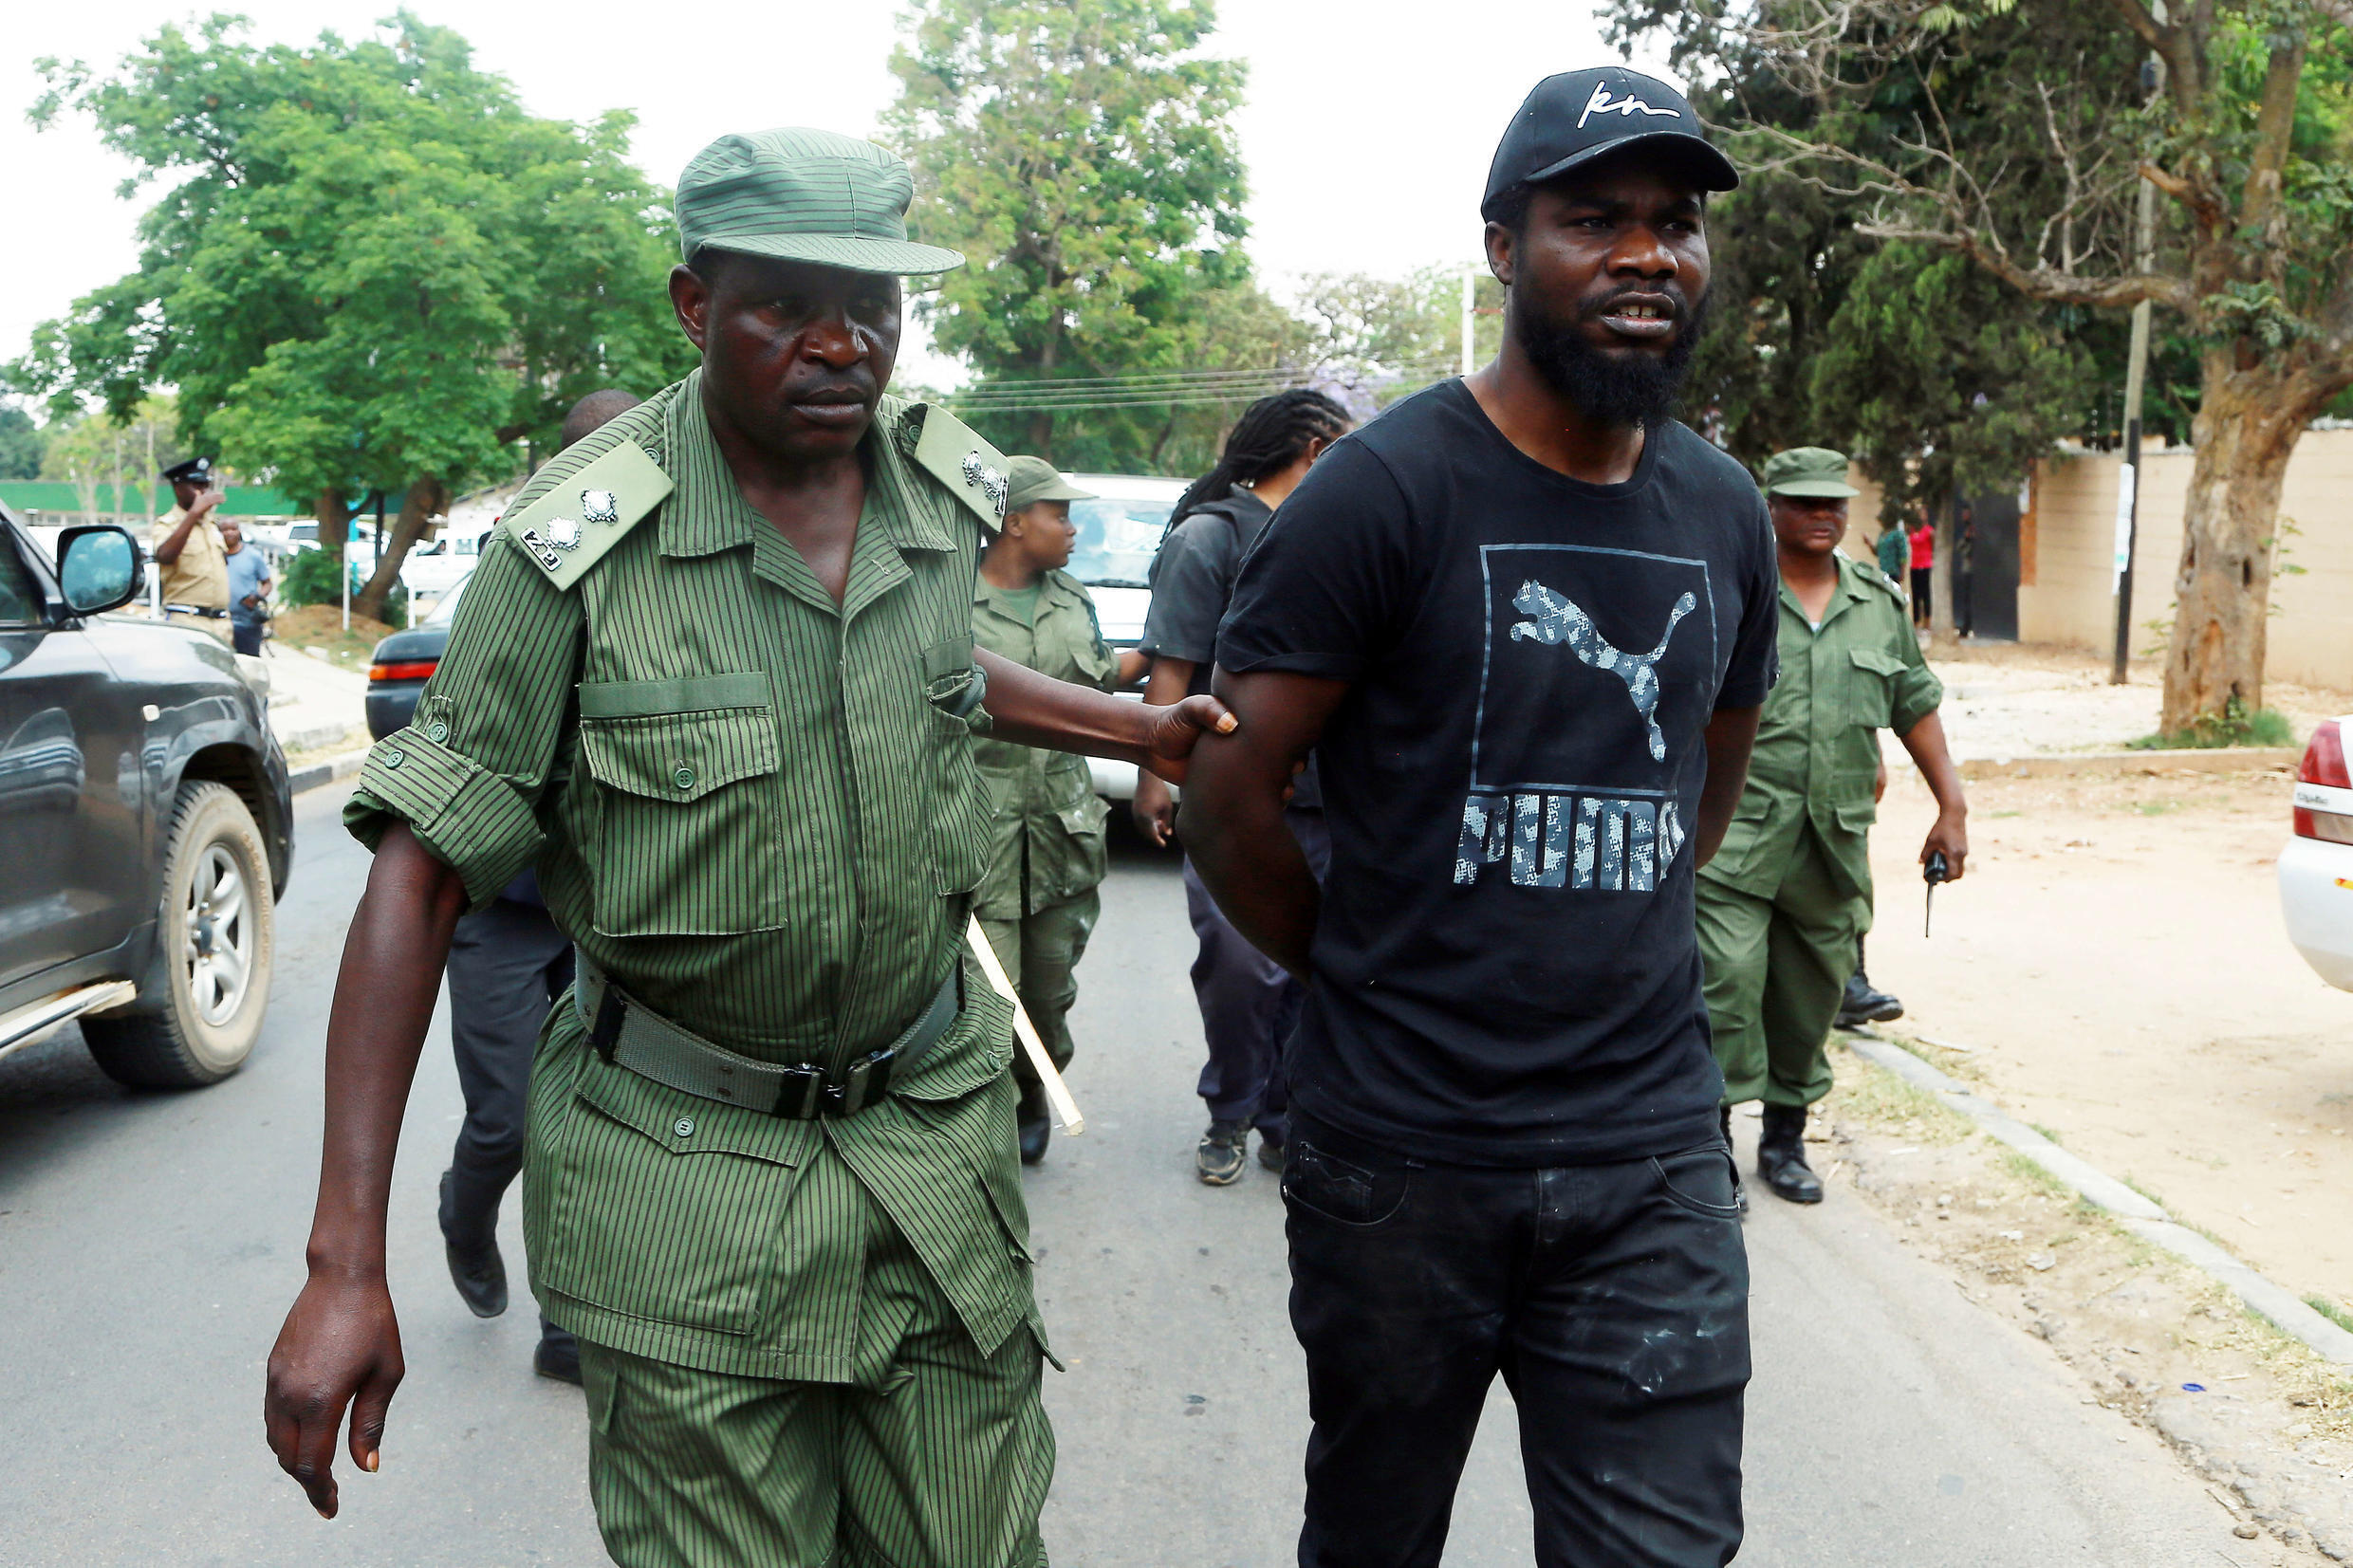 Pilato is arrested during a protest march in Lusaka on 29 September 2017.